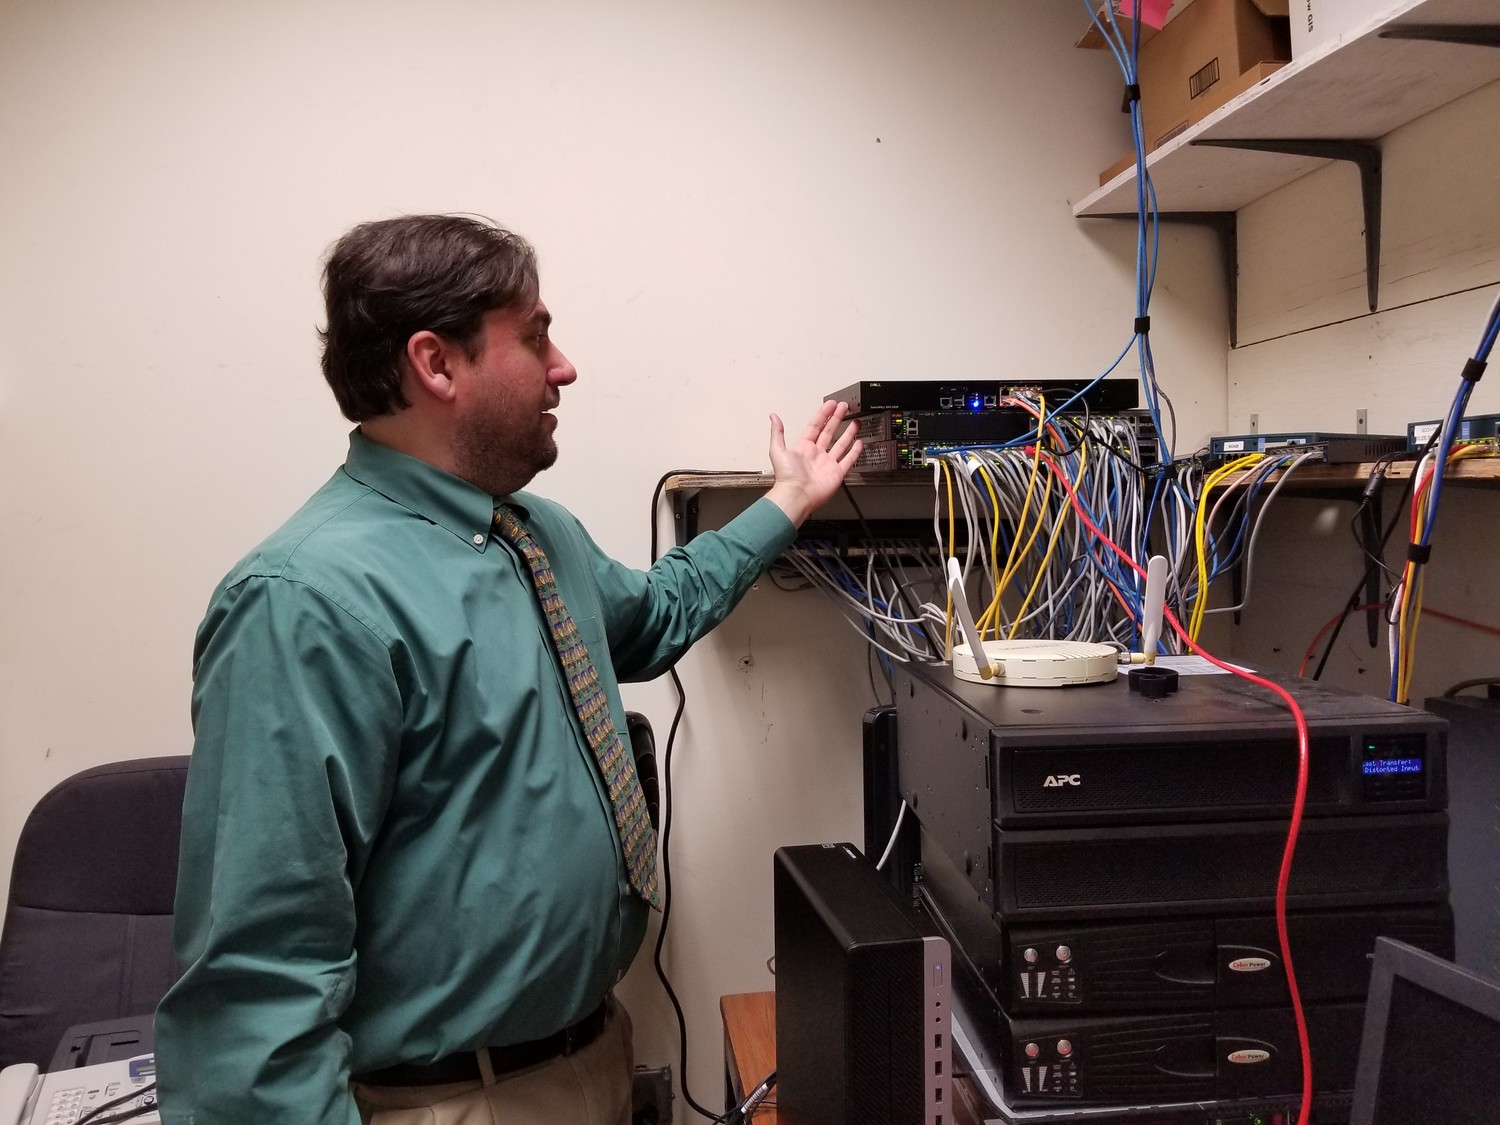 Anthony Frisa, the city's information technology manager, expressed frustration at the current state of his server room.